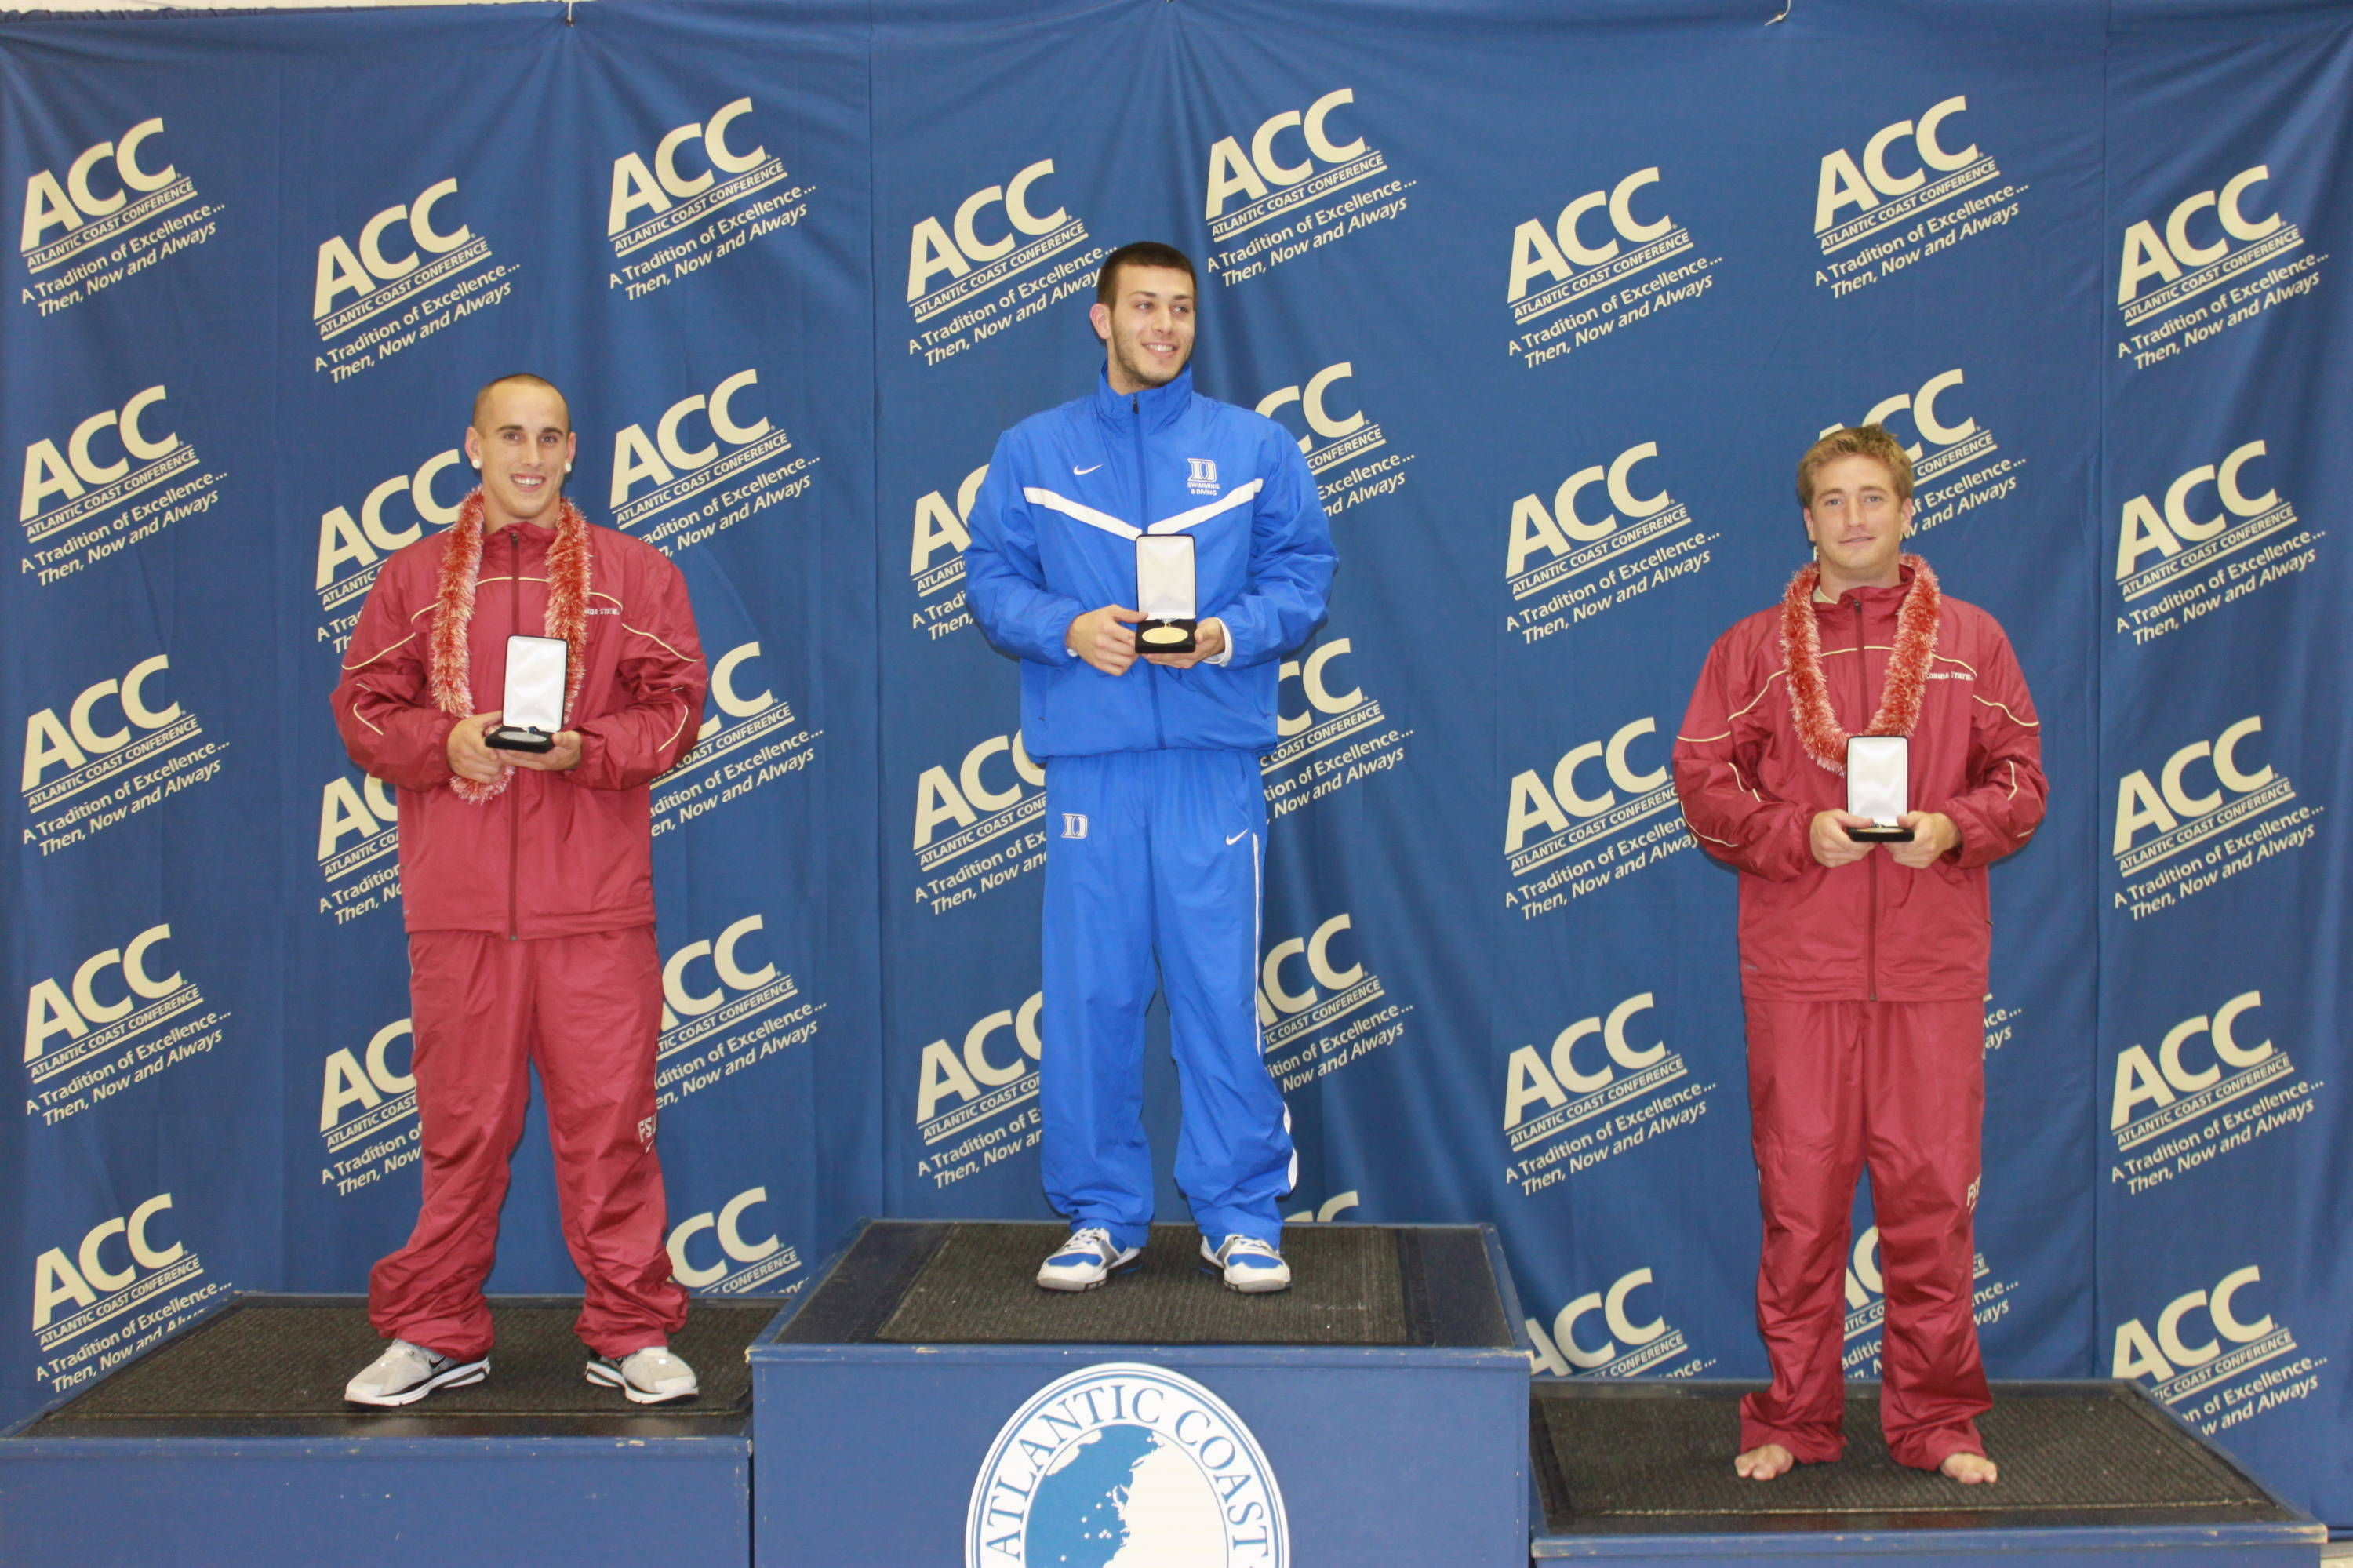 Landon Marzullo and Jordan Horsley on the podium after the men's one-meter